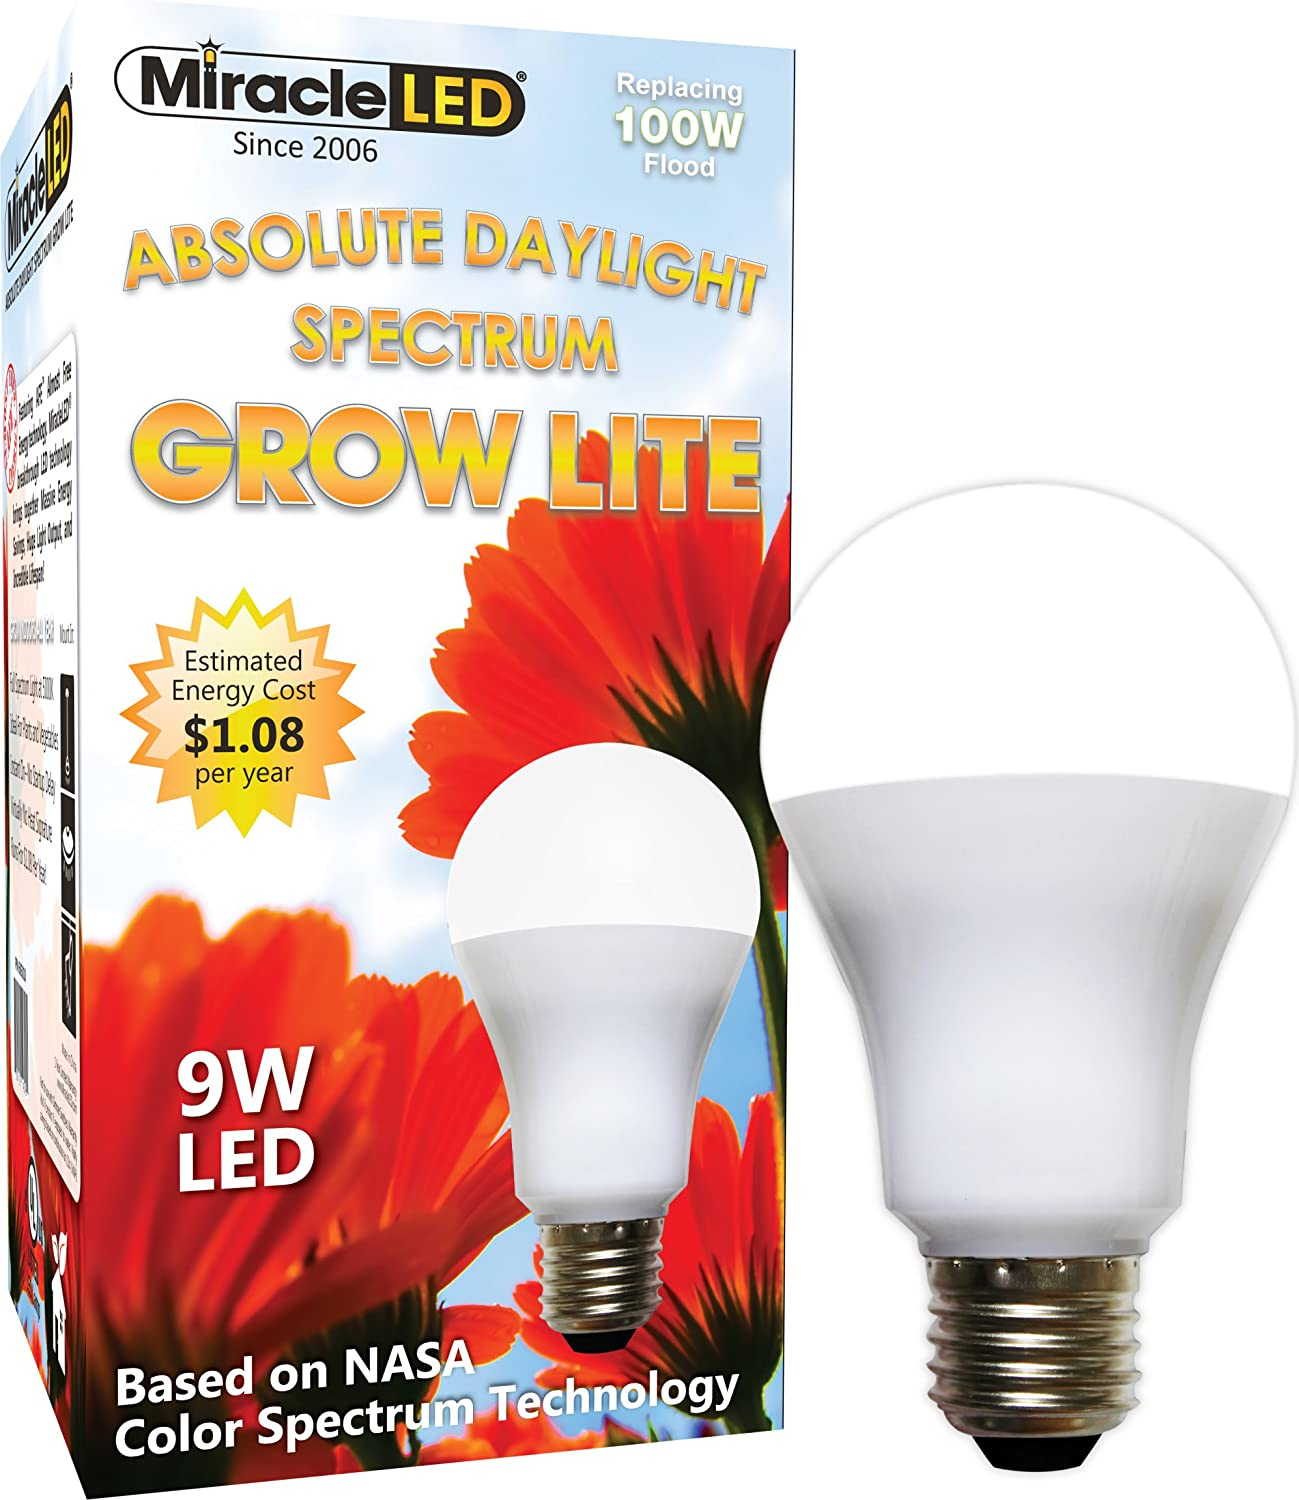 Miracle LED Absolute Daylight Spectrum Grow Lite - Replaces up to 100W - Full Spectrum Hydroponic LED Plant Growing Light Bulb for Greenhouse, Garden, and Indoor (605088): Home Improvement